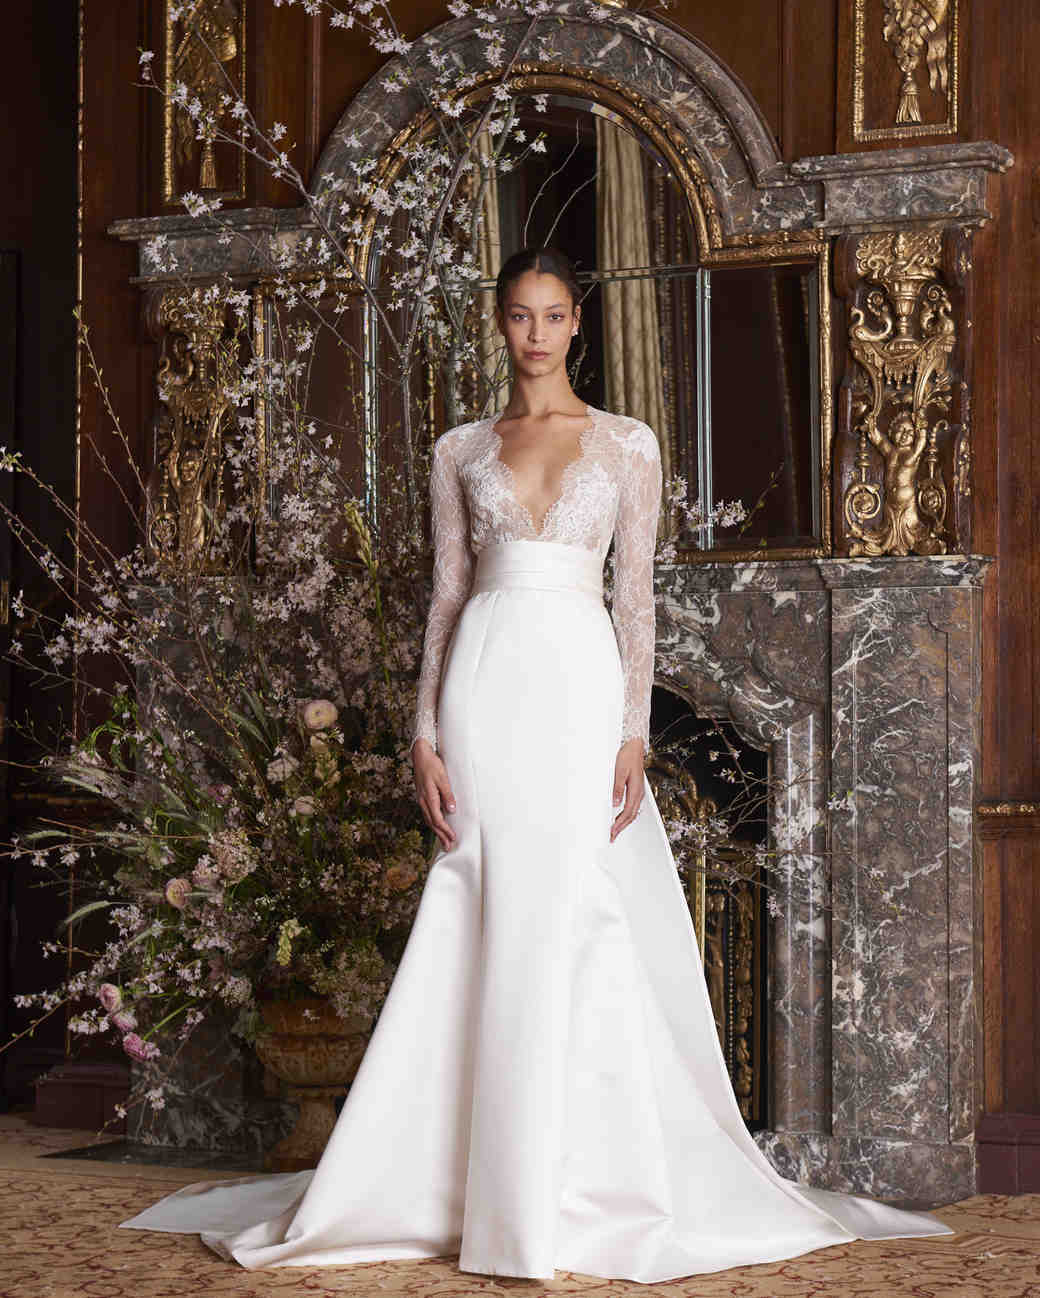 Monique Lhuillier Spring 2019 Wedding Dress Collection | Martha ...